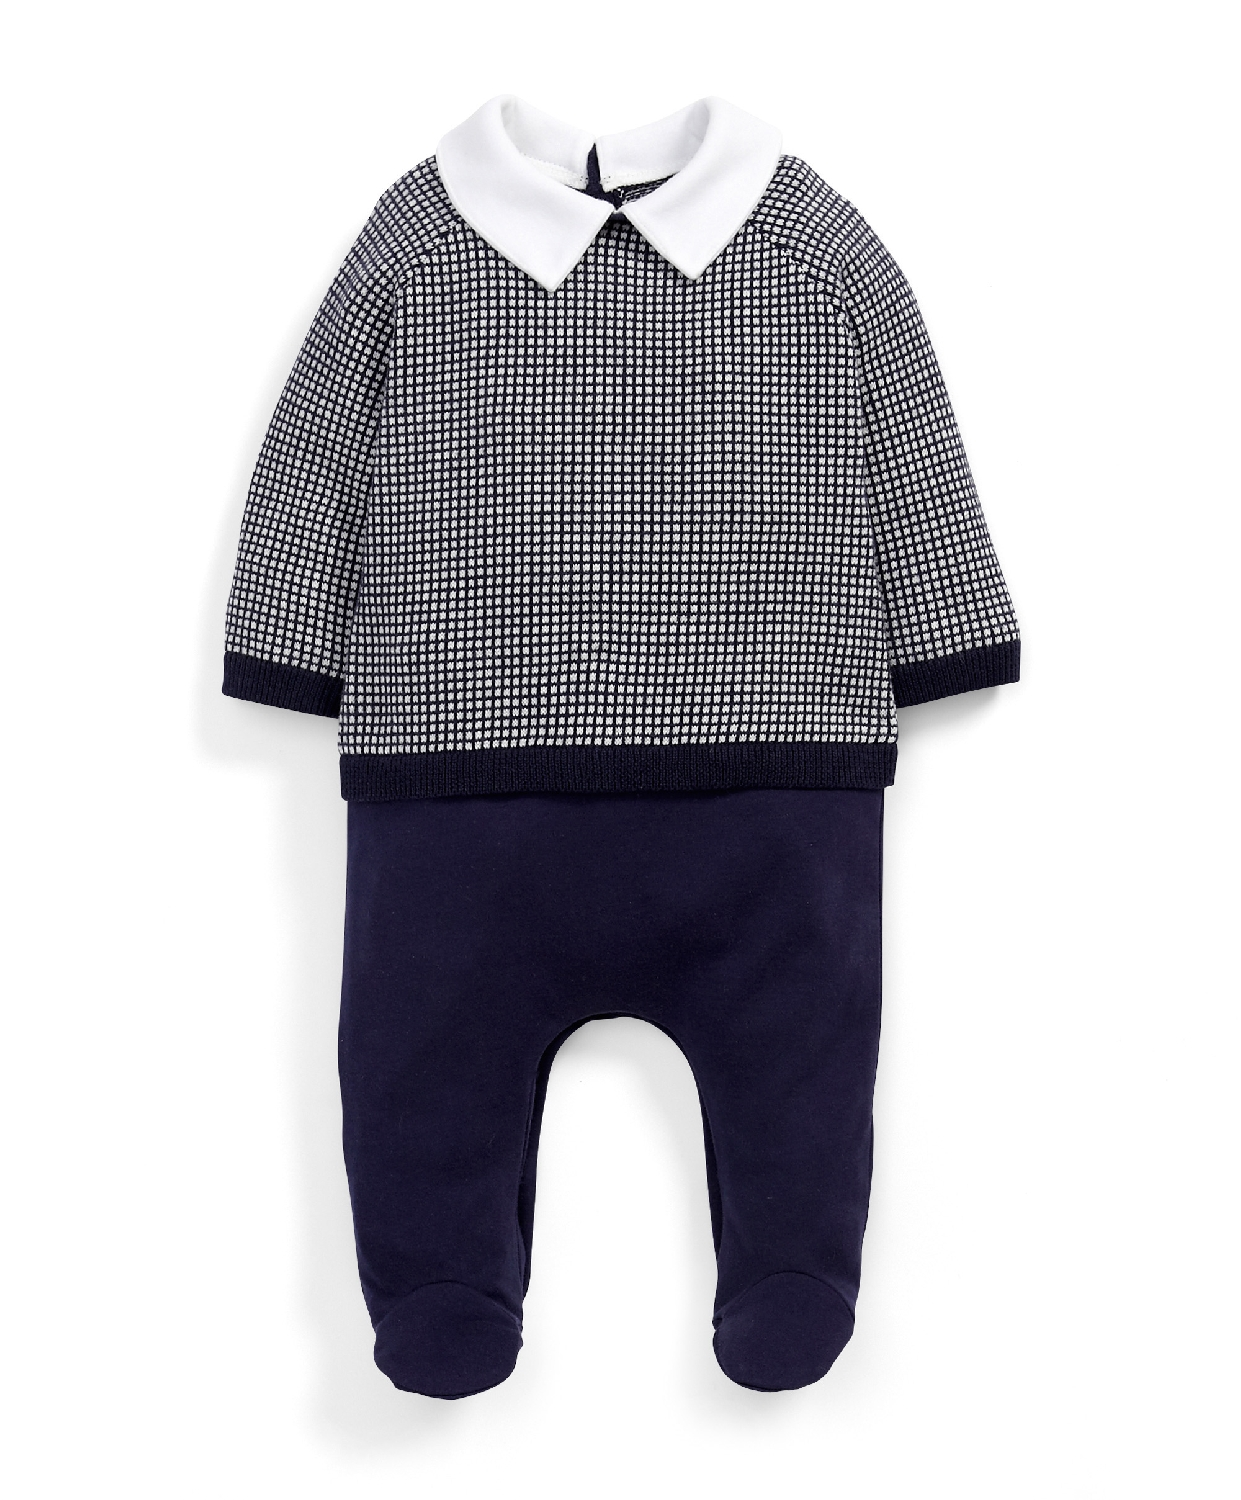 s94fah8-mock-outfit-aio-